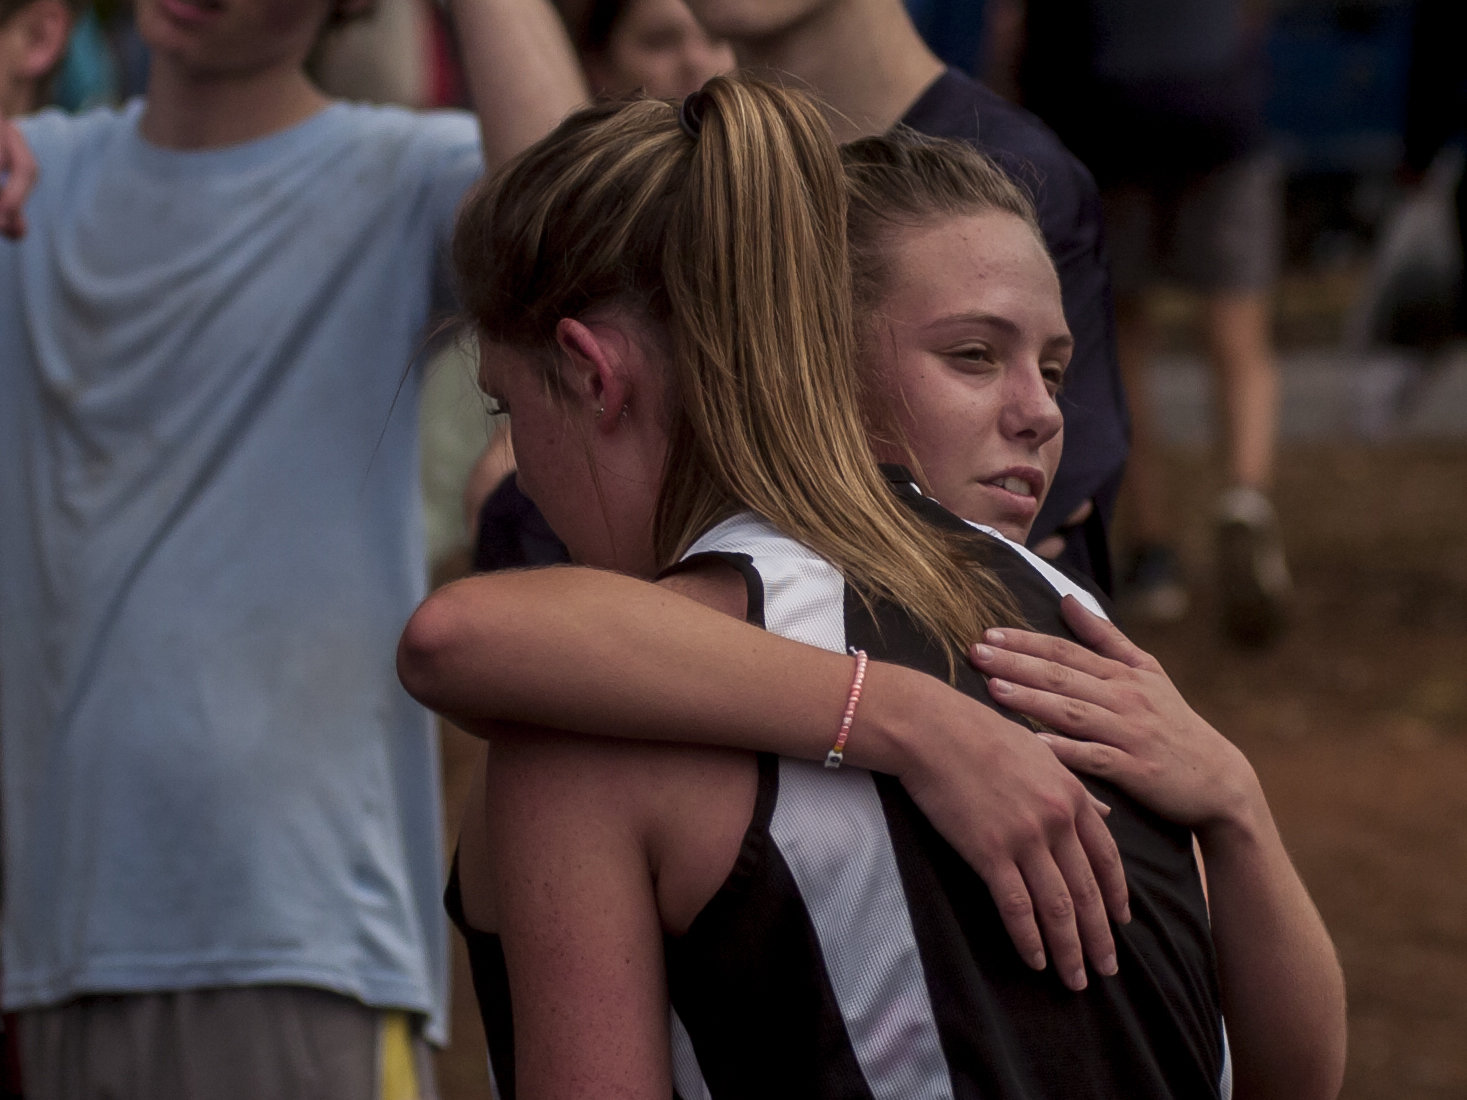 Rylee Evans hugs her big sister Baylee after the Class 5A state championship race in Carrollton Friday morning. Woodland High held on for the narrow win to secure its second state title in the last three years.